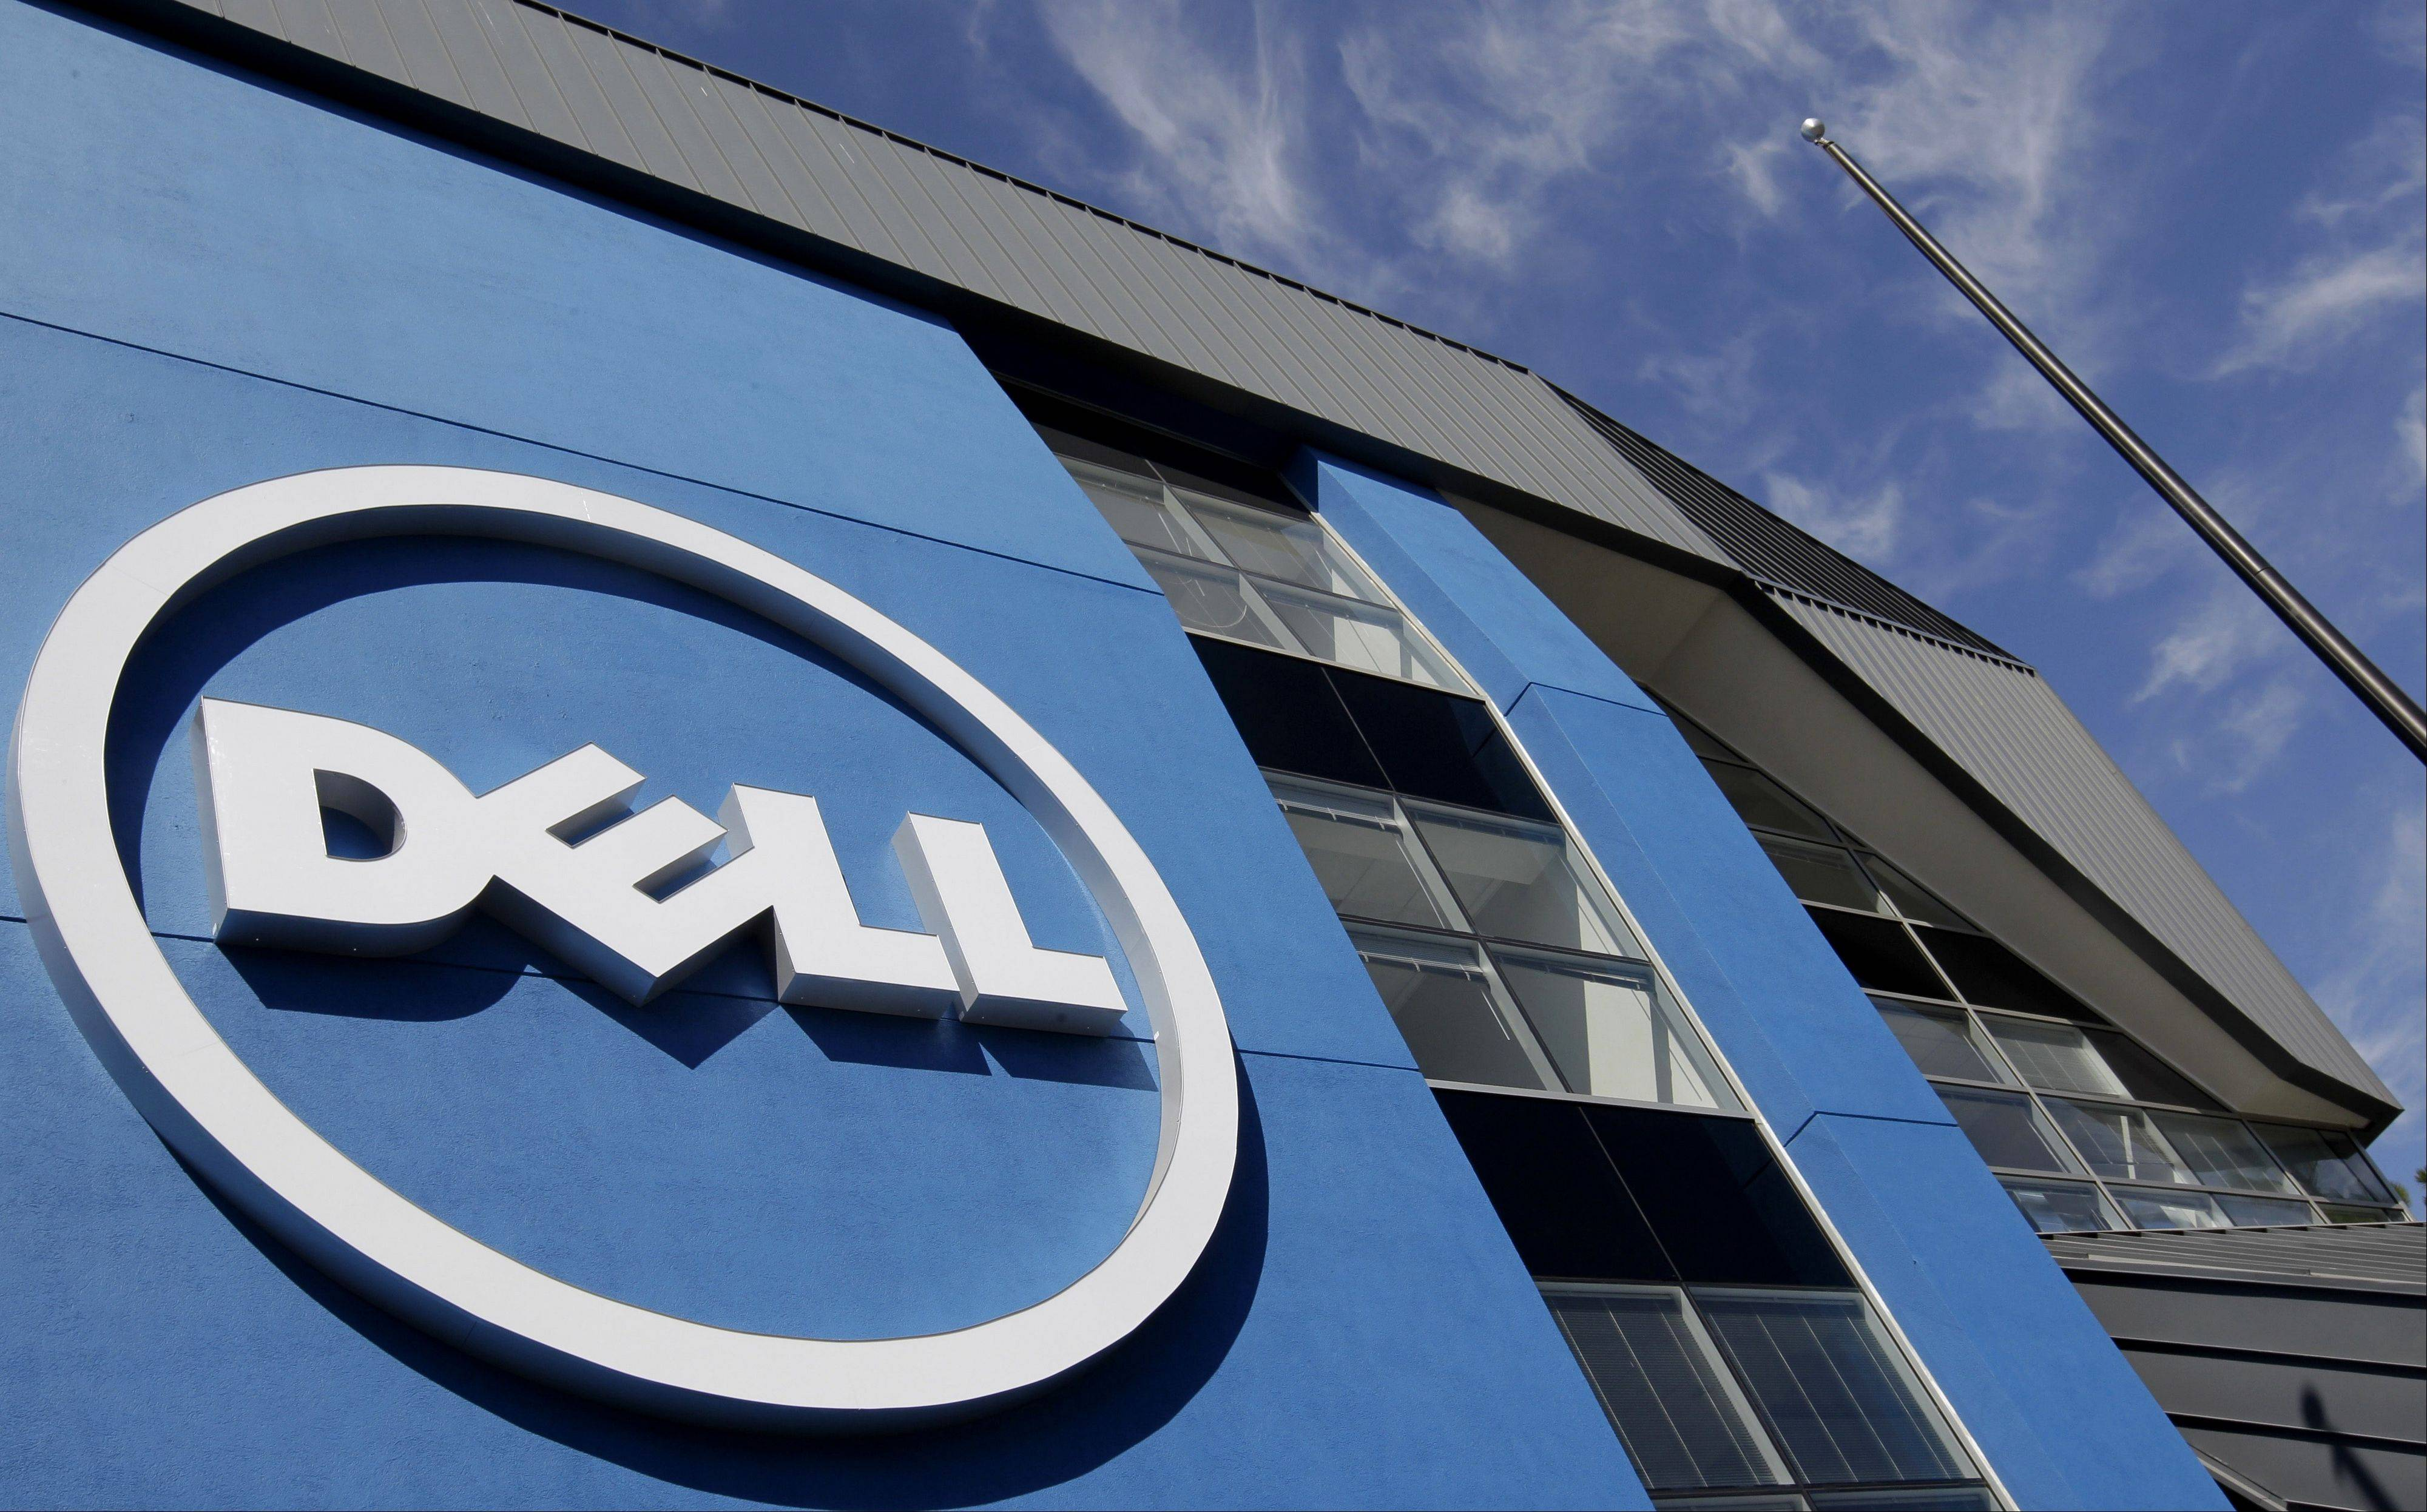 Dell Inc., which last week agreed to be taken private, closed above the offer price for the first time since the announcement after the computer maker�s largest outside shareholder said the proposed deal undervalues it.